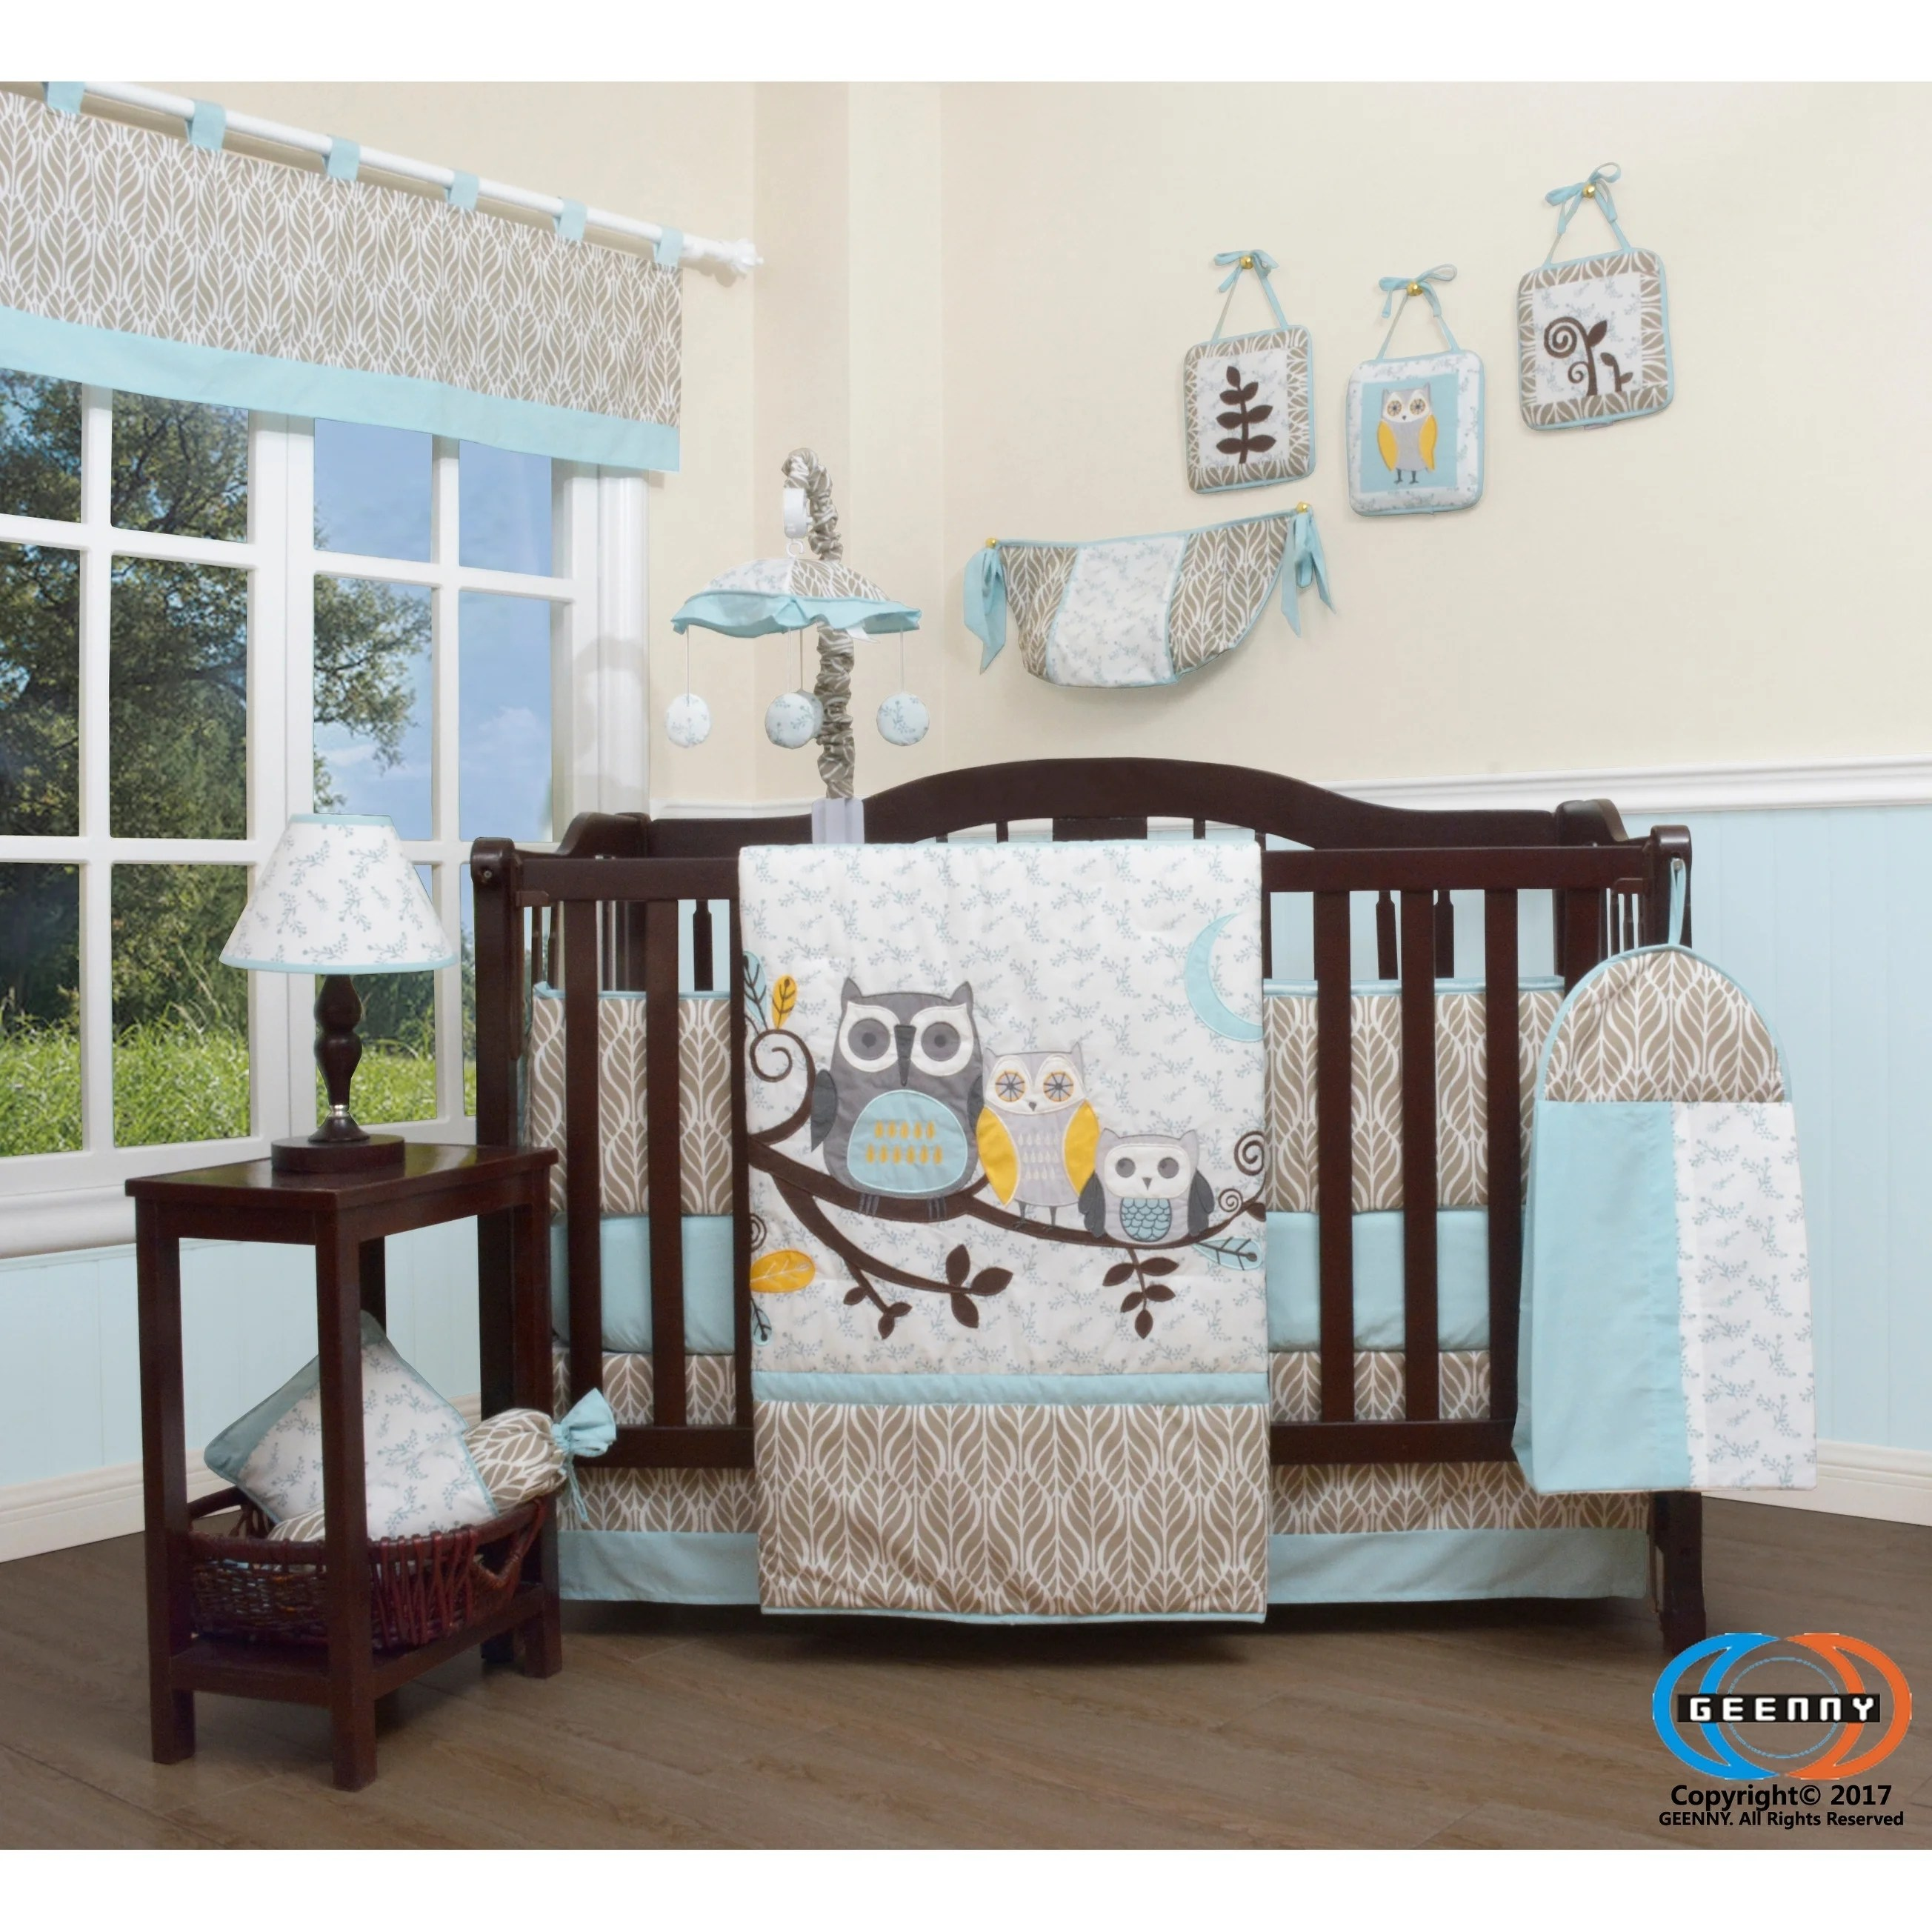 Geenny Enchanted Forest Owls Family 13 Piece Baby Nursery Crib Bedding Set Overstock 30897755